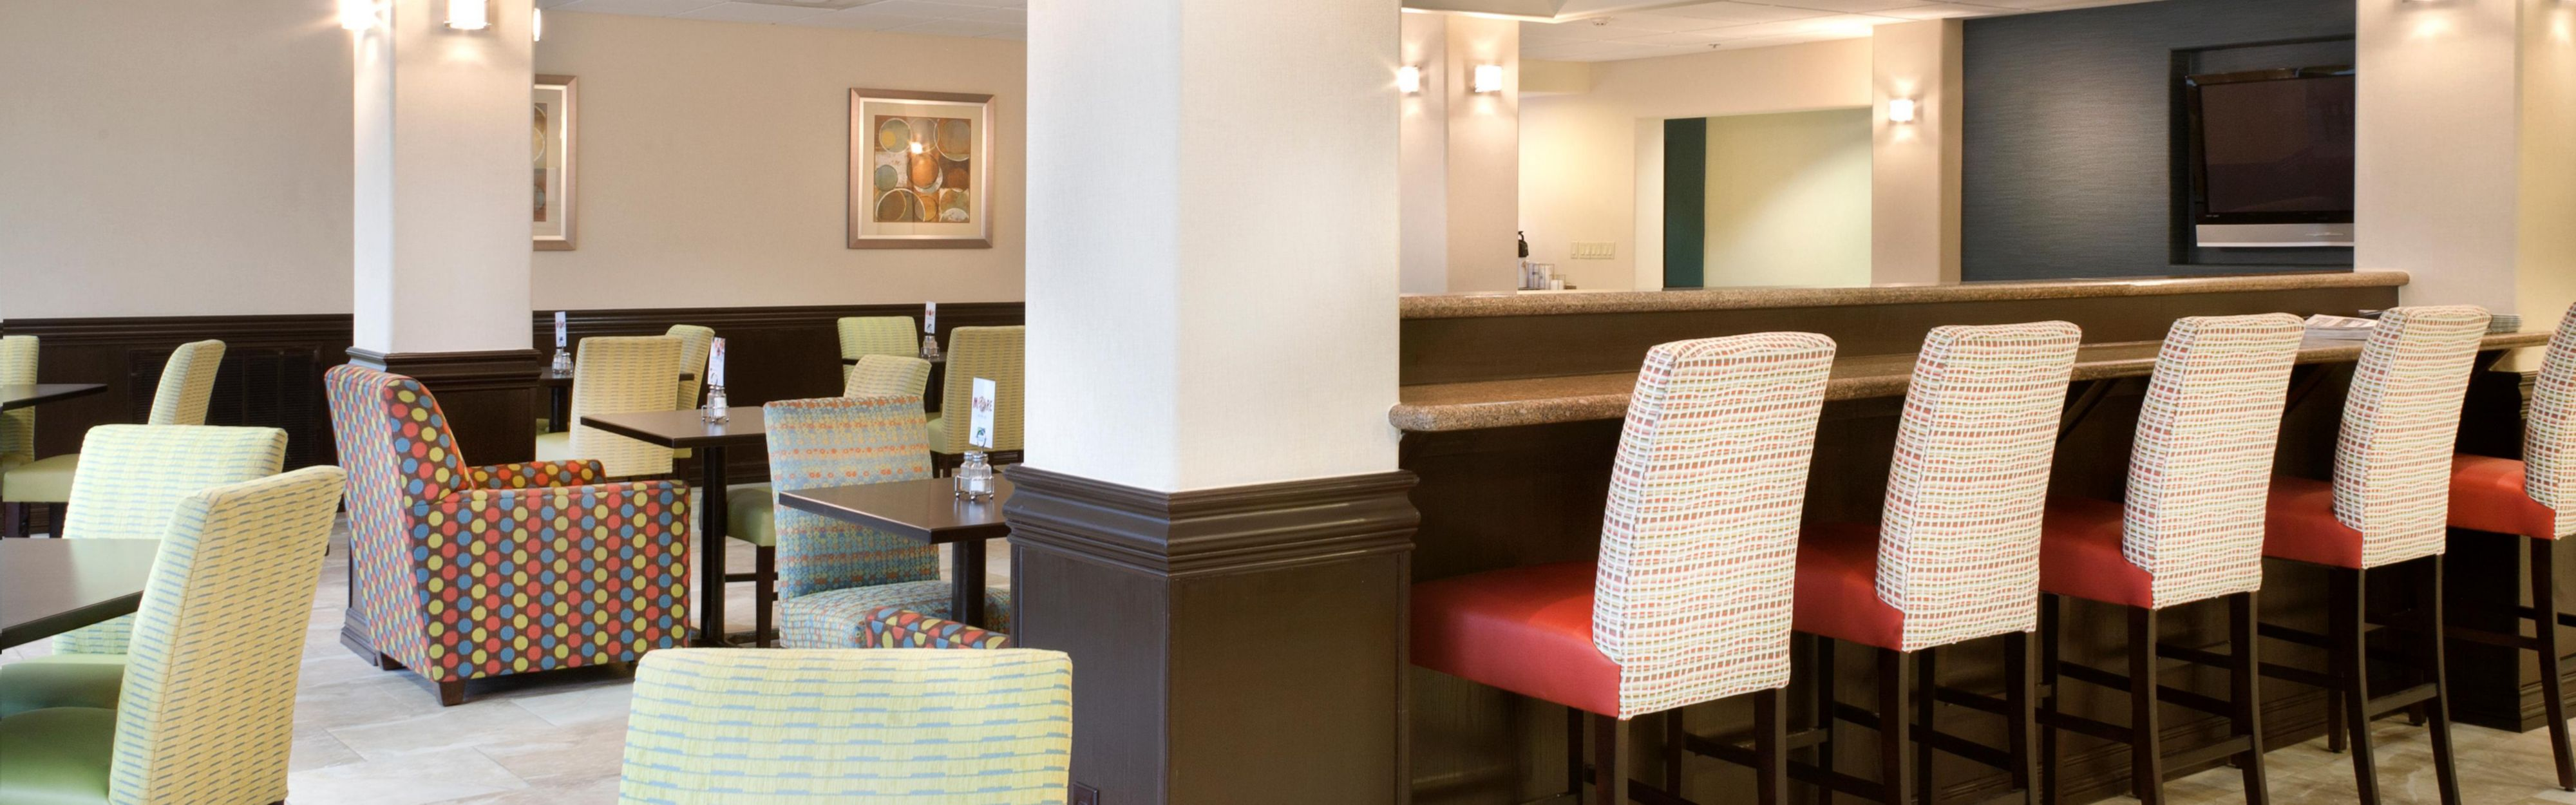 Holiday Inn Express & Suites Brownsville image 3